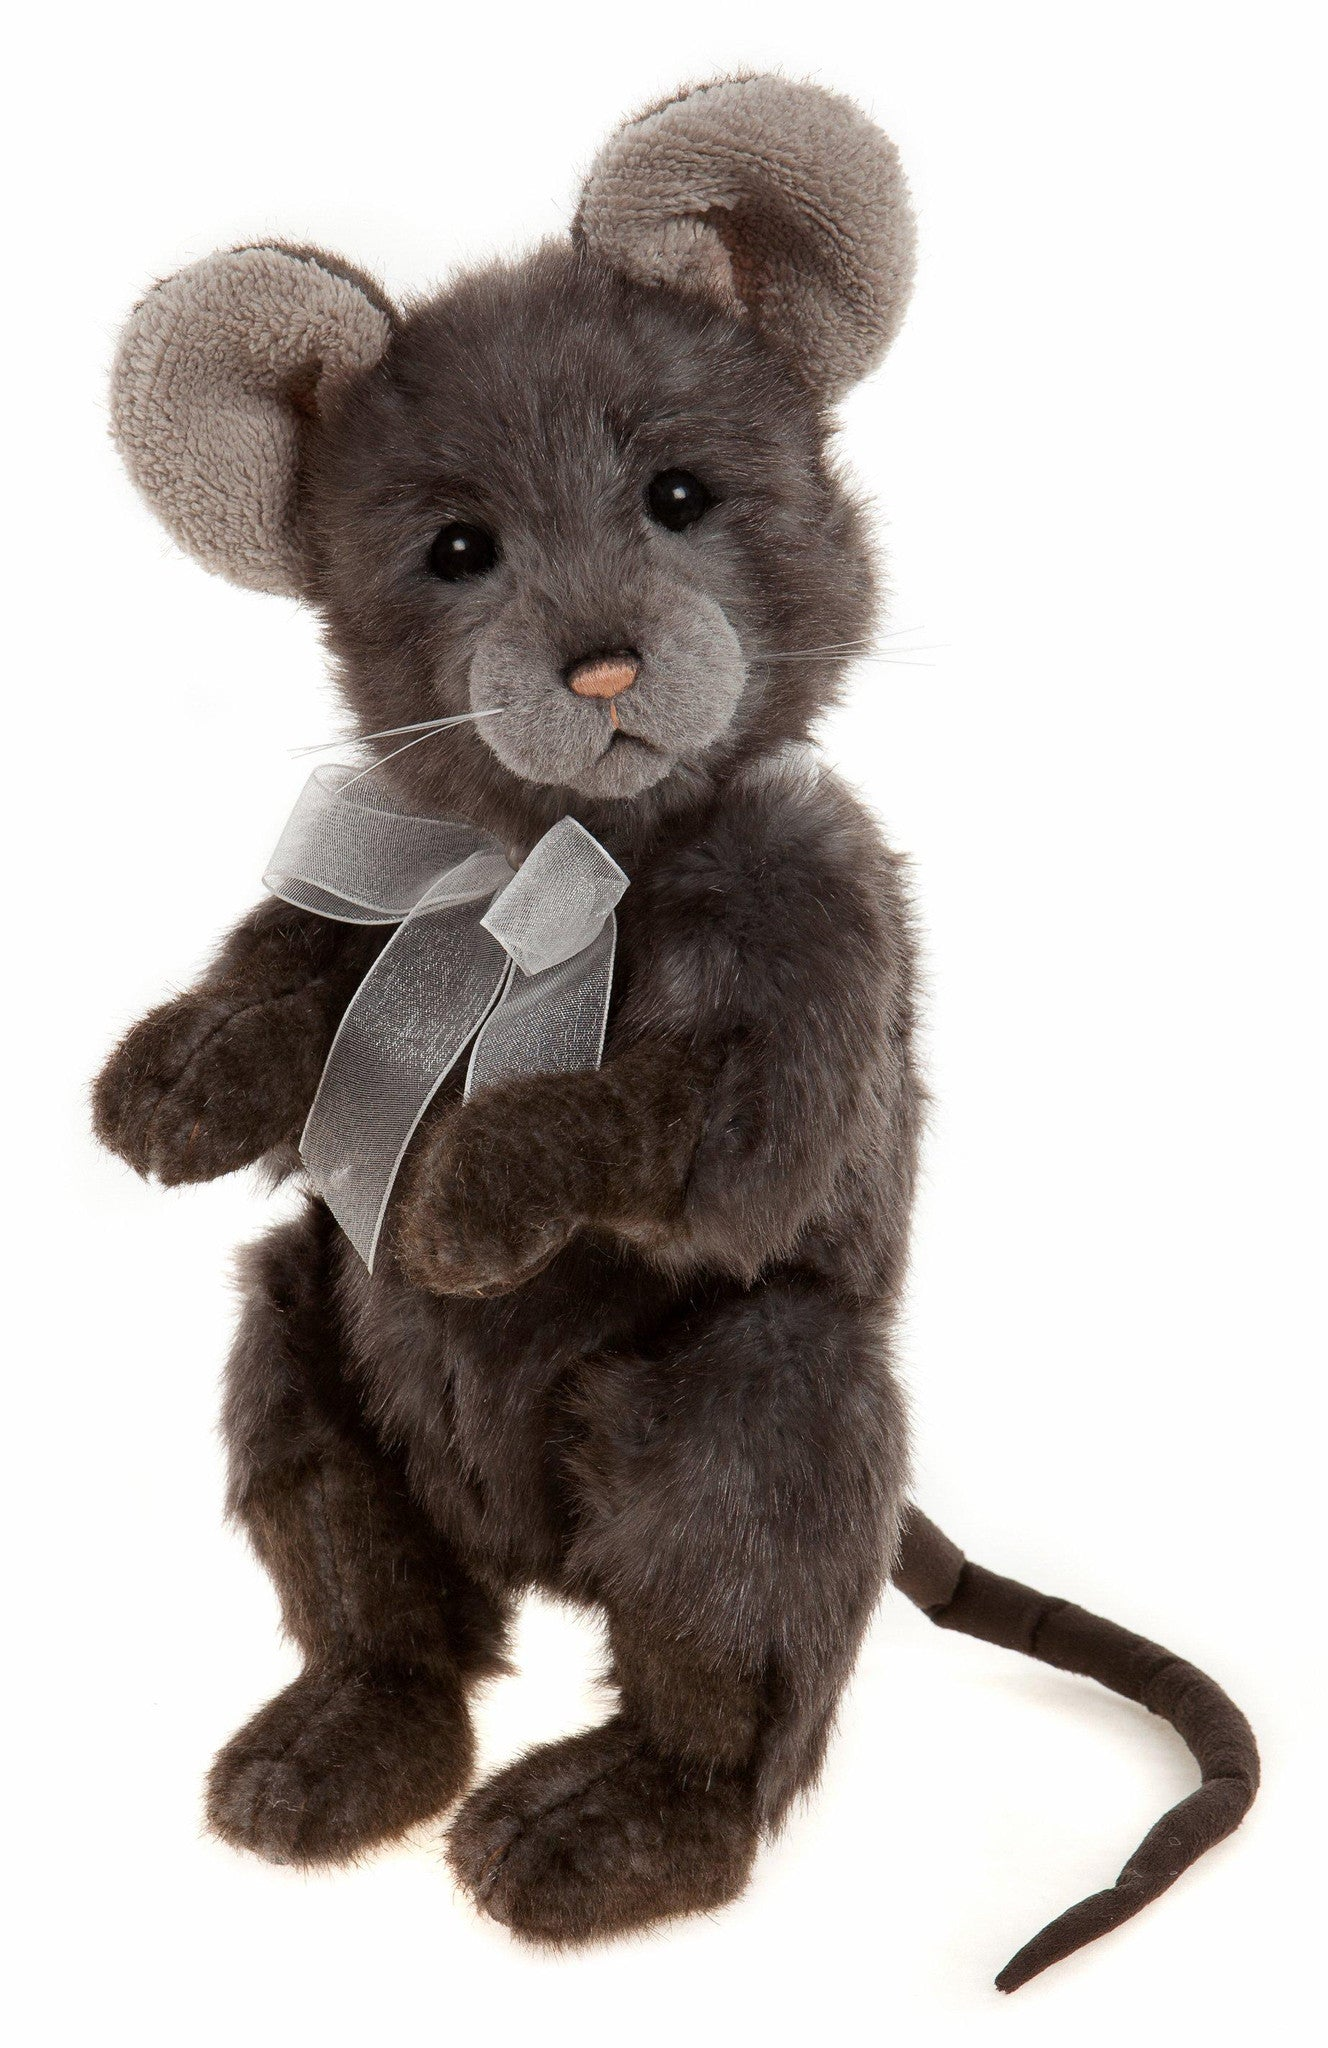 Templeton Rat Stuffed Animal - Charlie Bears Mouse